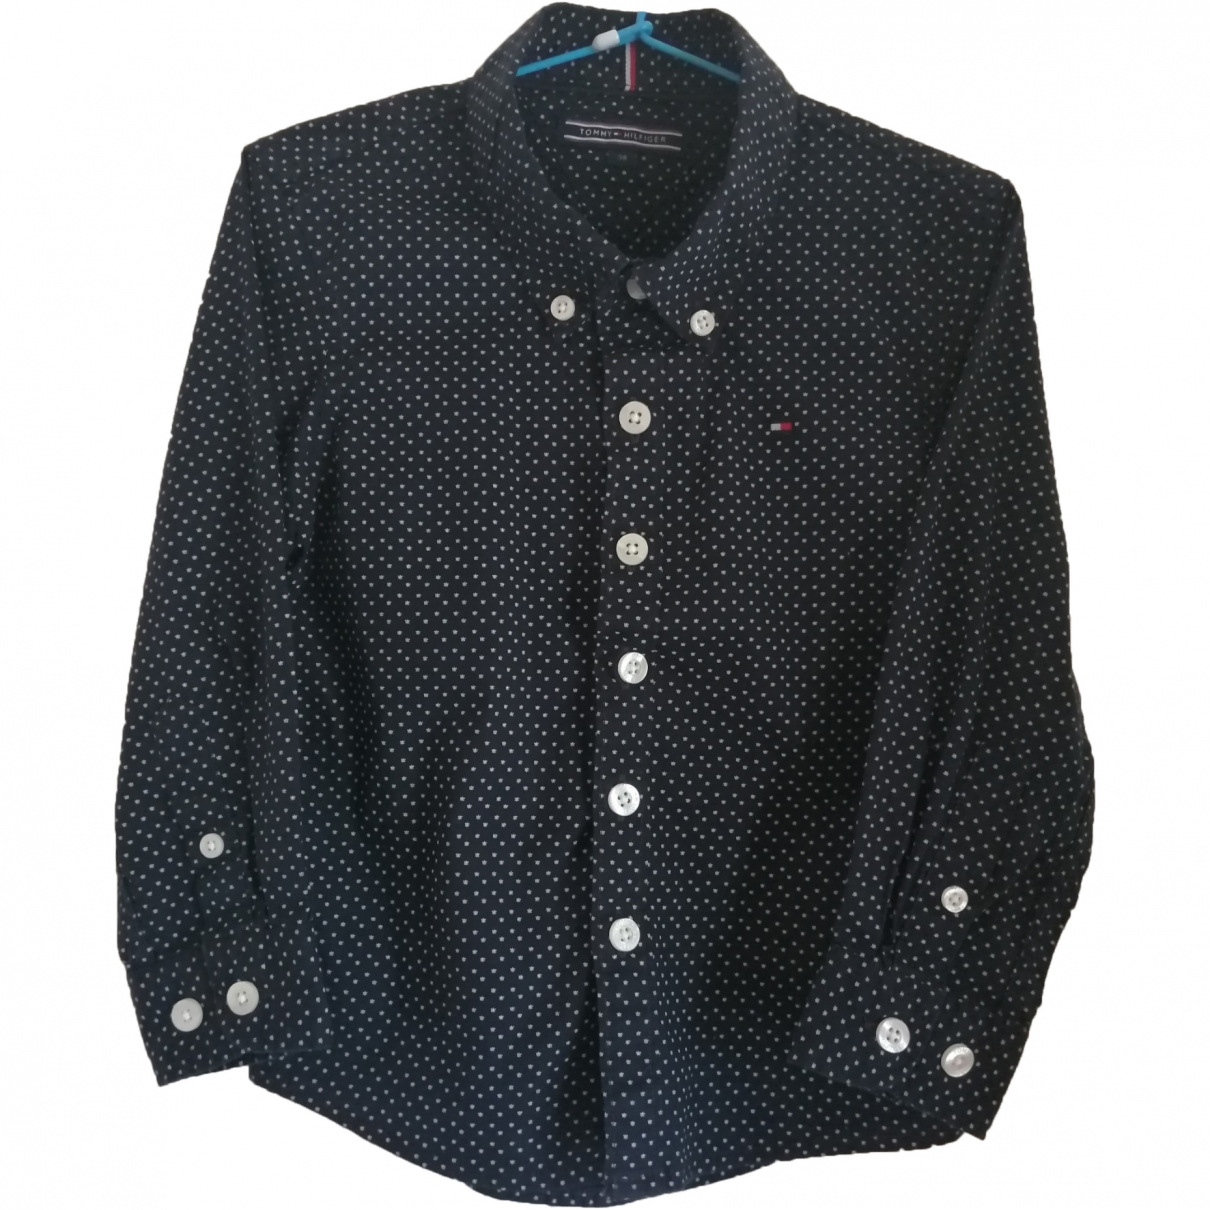 Tommy Hilfiger \N Blue Cotton  top for Kids 3 years - until 39 inches UK